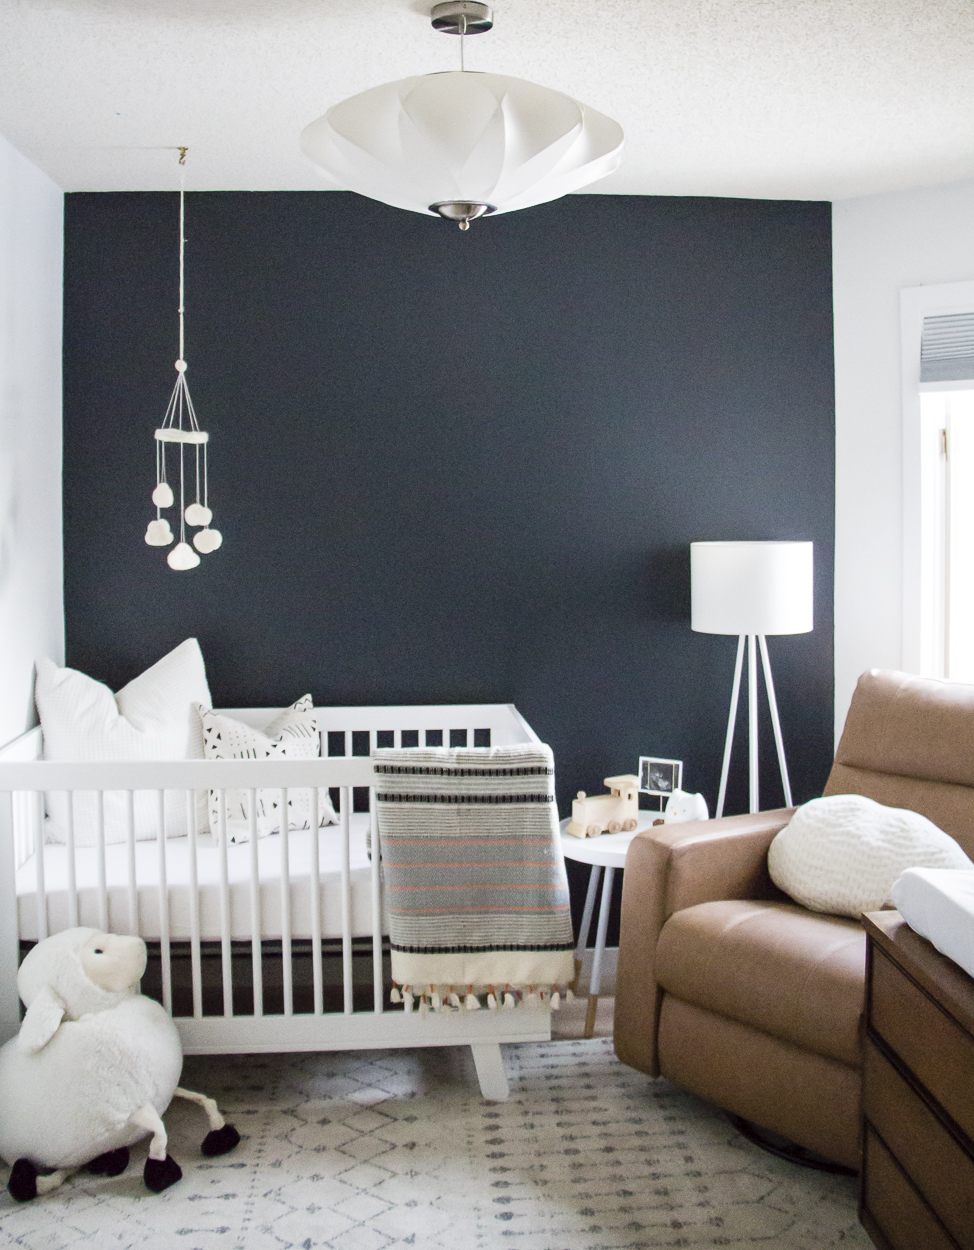 Toddler Boy Room Ideas: Oh Baby! Jack's Sweet & Simple Nursery Reveal